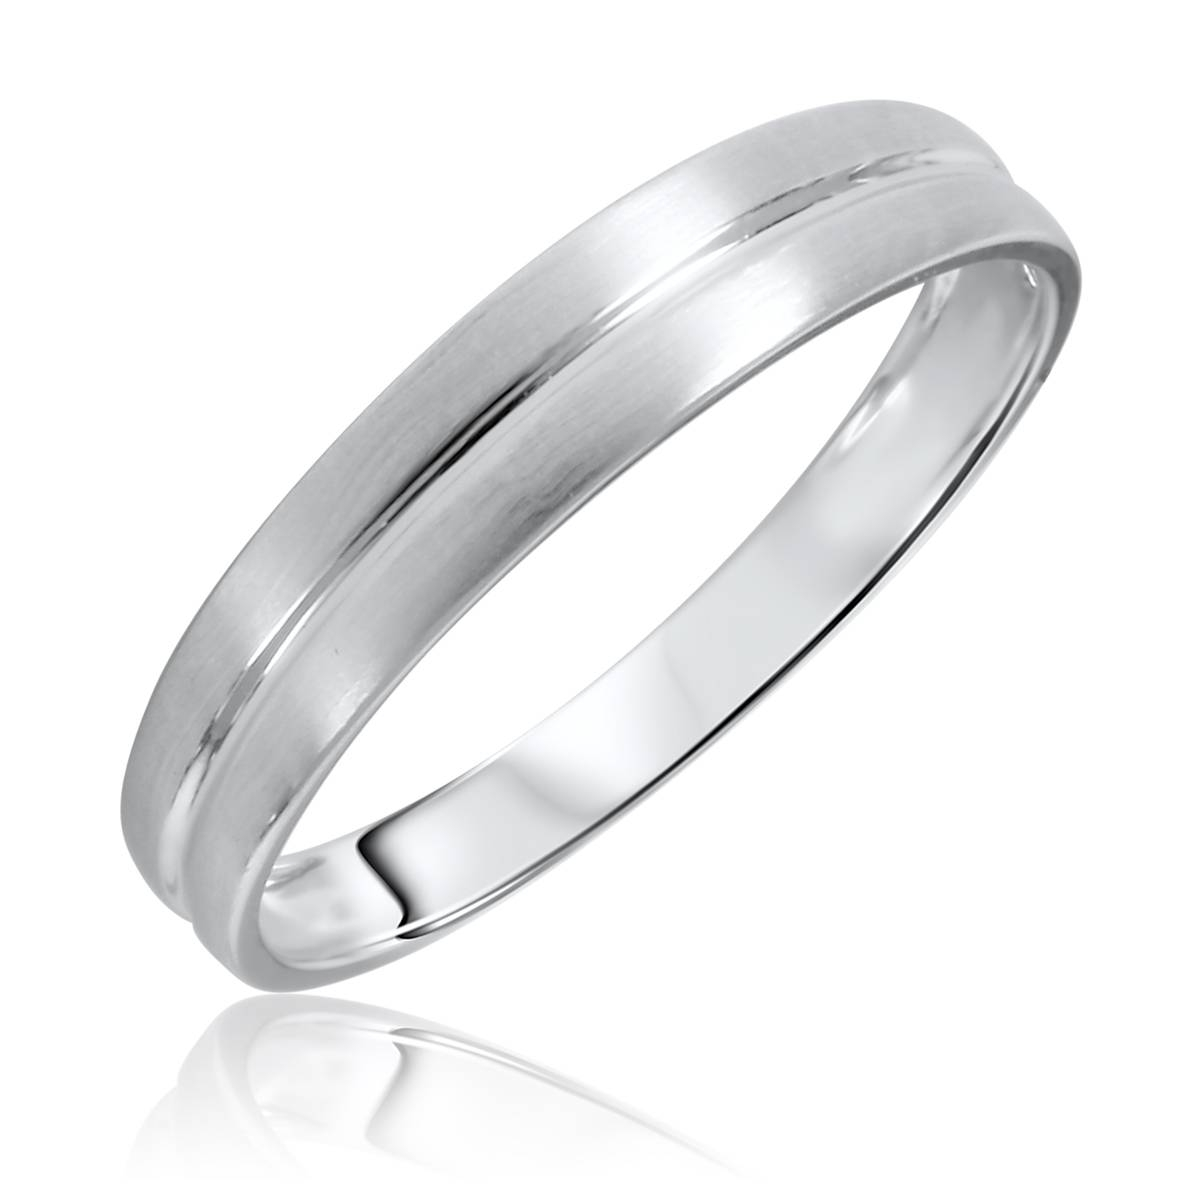 No Diamondstraditional Mens Wedding Band 14k White Gold Inside White Gold Wedding Rings For Men (View 10 of 15)